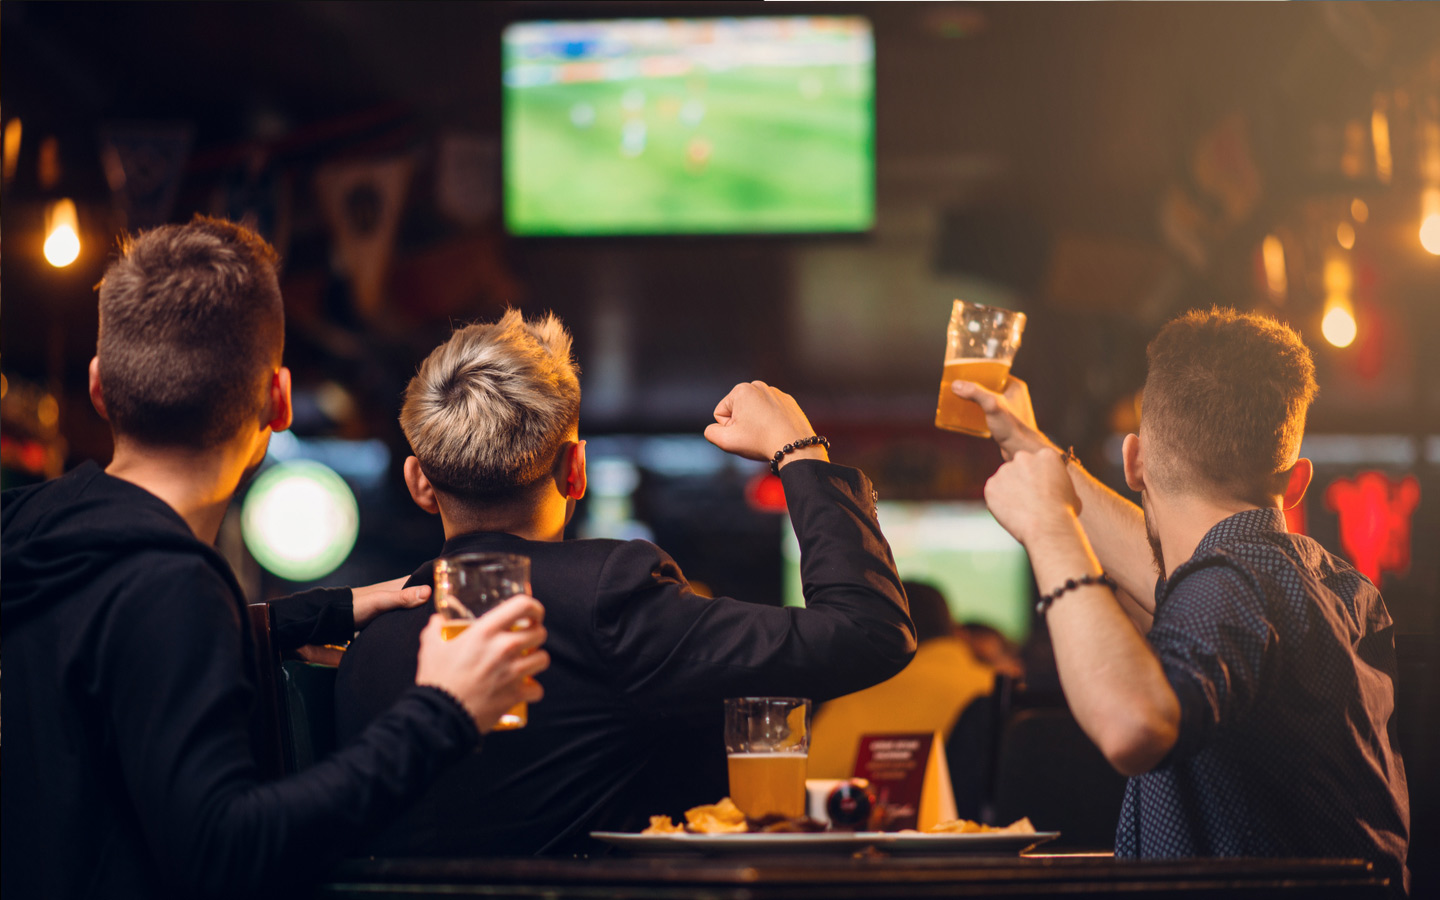 World cup offers in the restaurants and pubs in Dubai